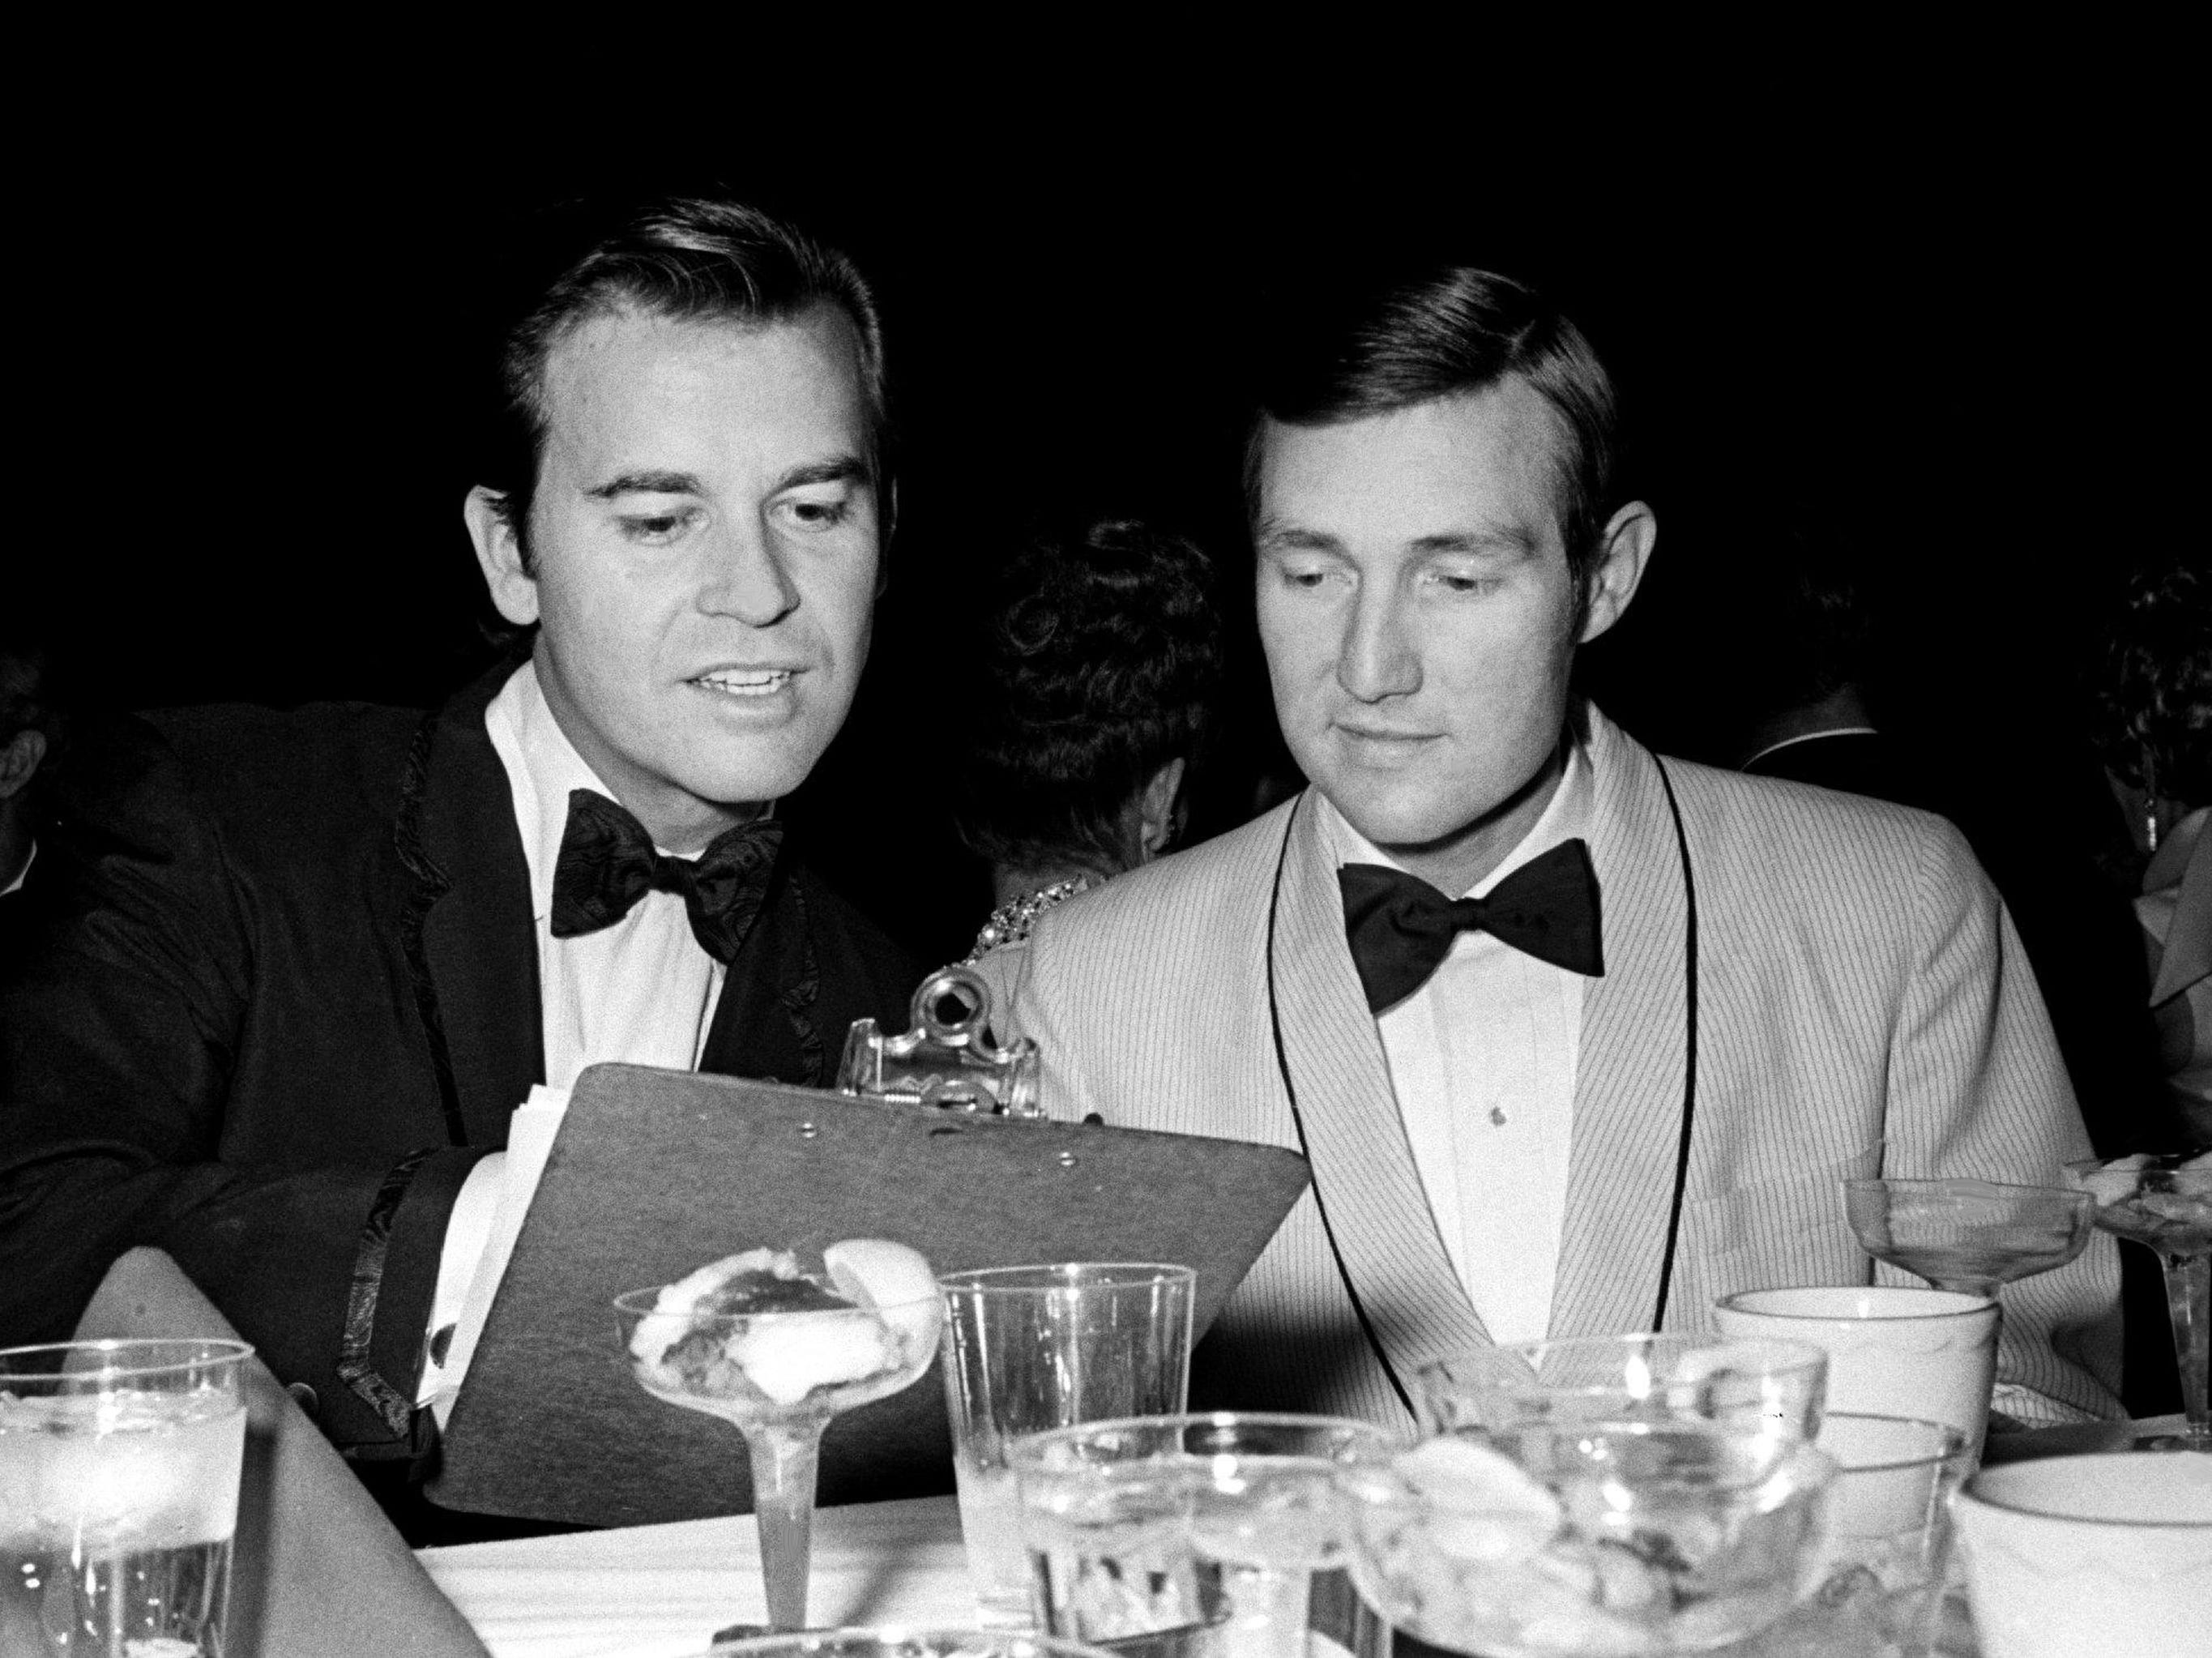 Dick Clark, left, master of ceremonies, and Don Light, president of Nashville chapter of NARAS, goes over the program together before the Grammy ceremonies got under way at the National Guard Armory in Nashville March 12, 1969.